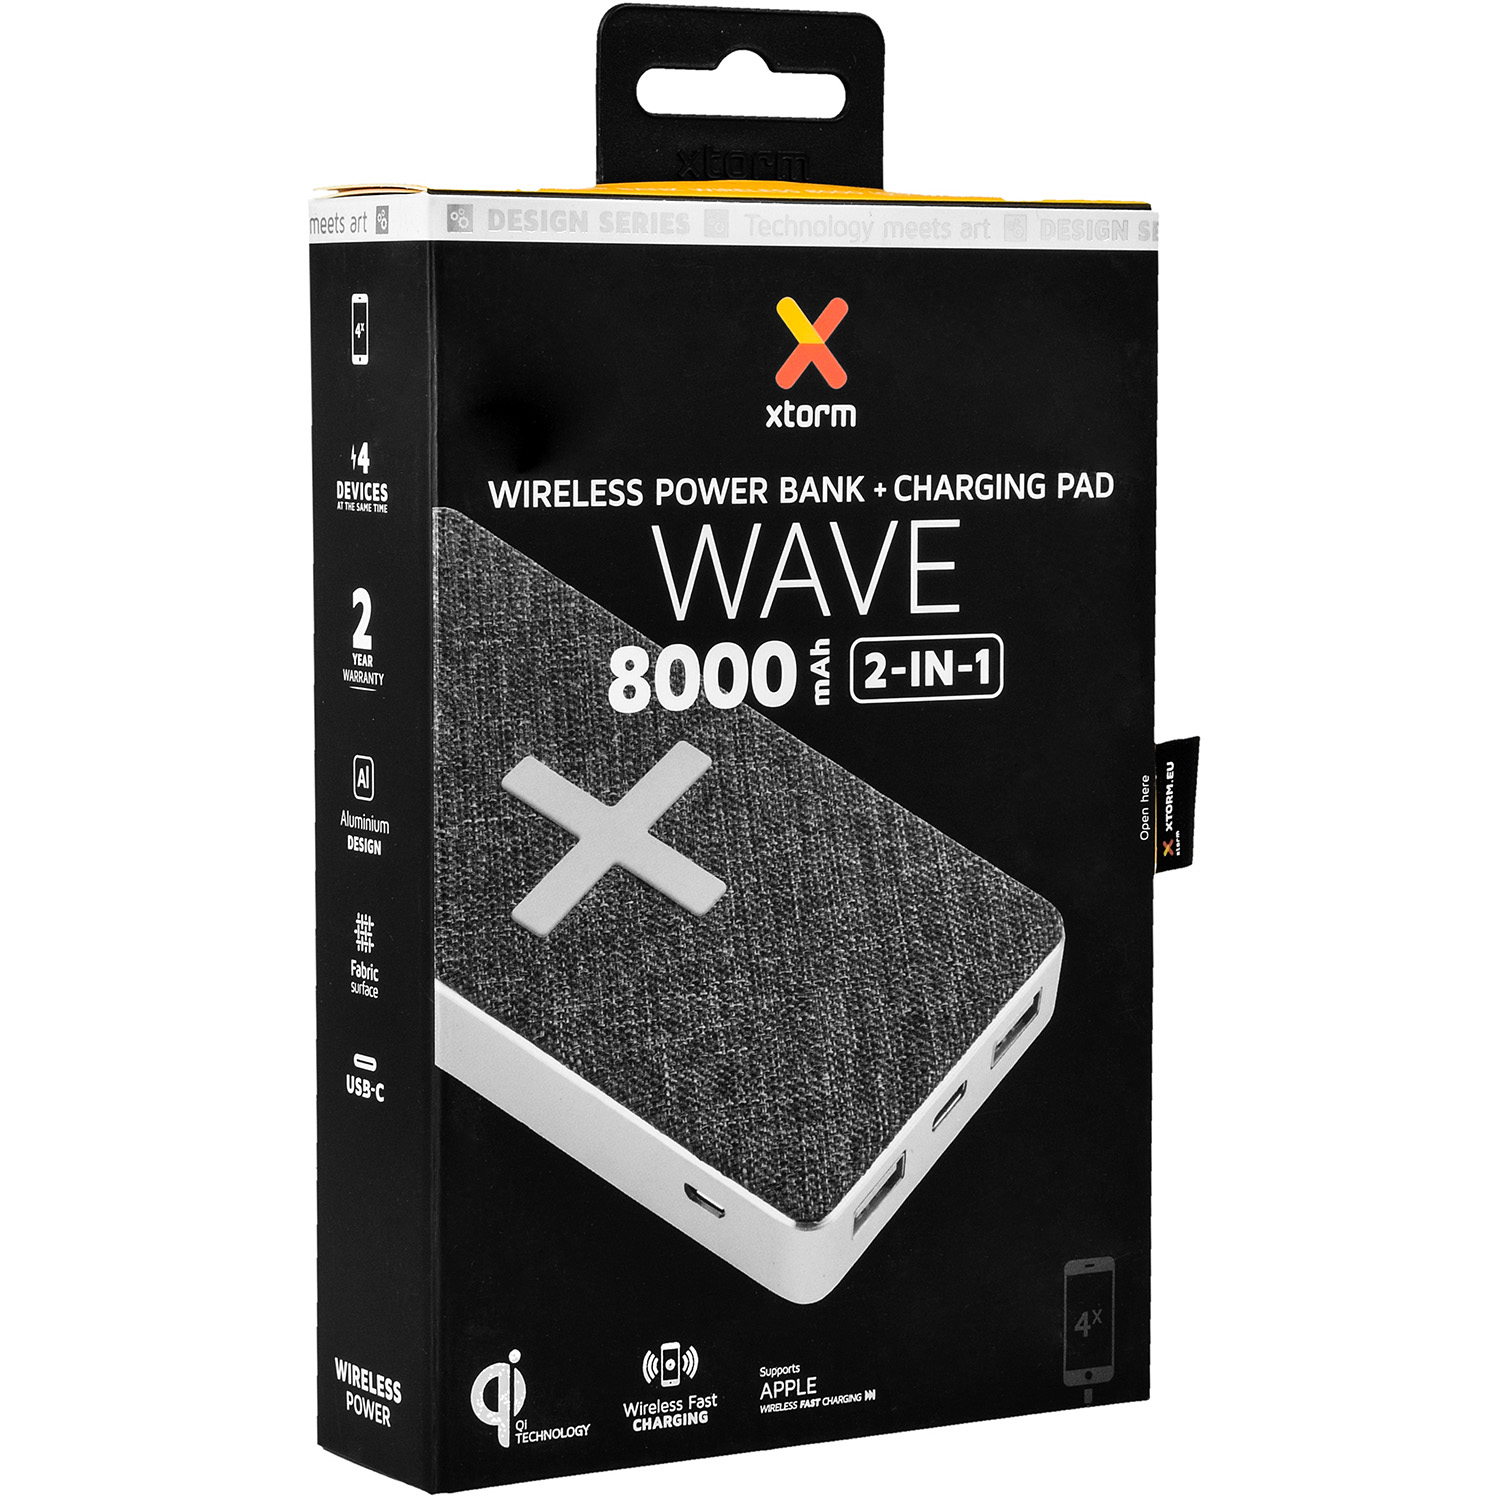 Oryginalna bateria ładowarka Xtorm Wireless Power Bank Wave 8000mAh